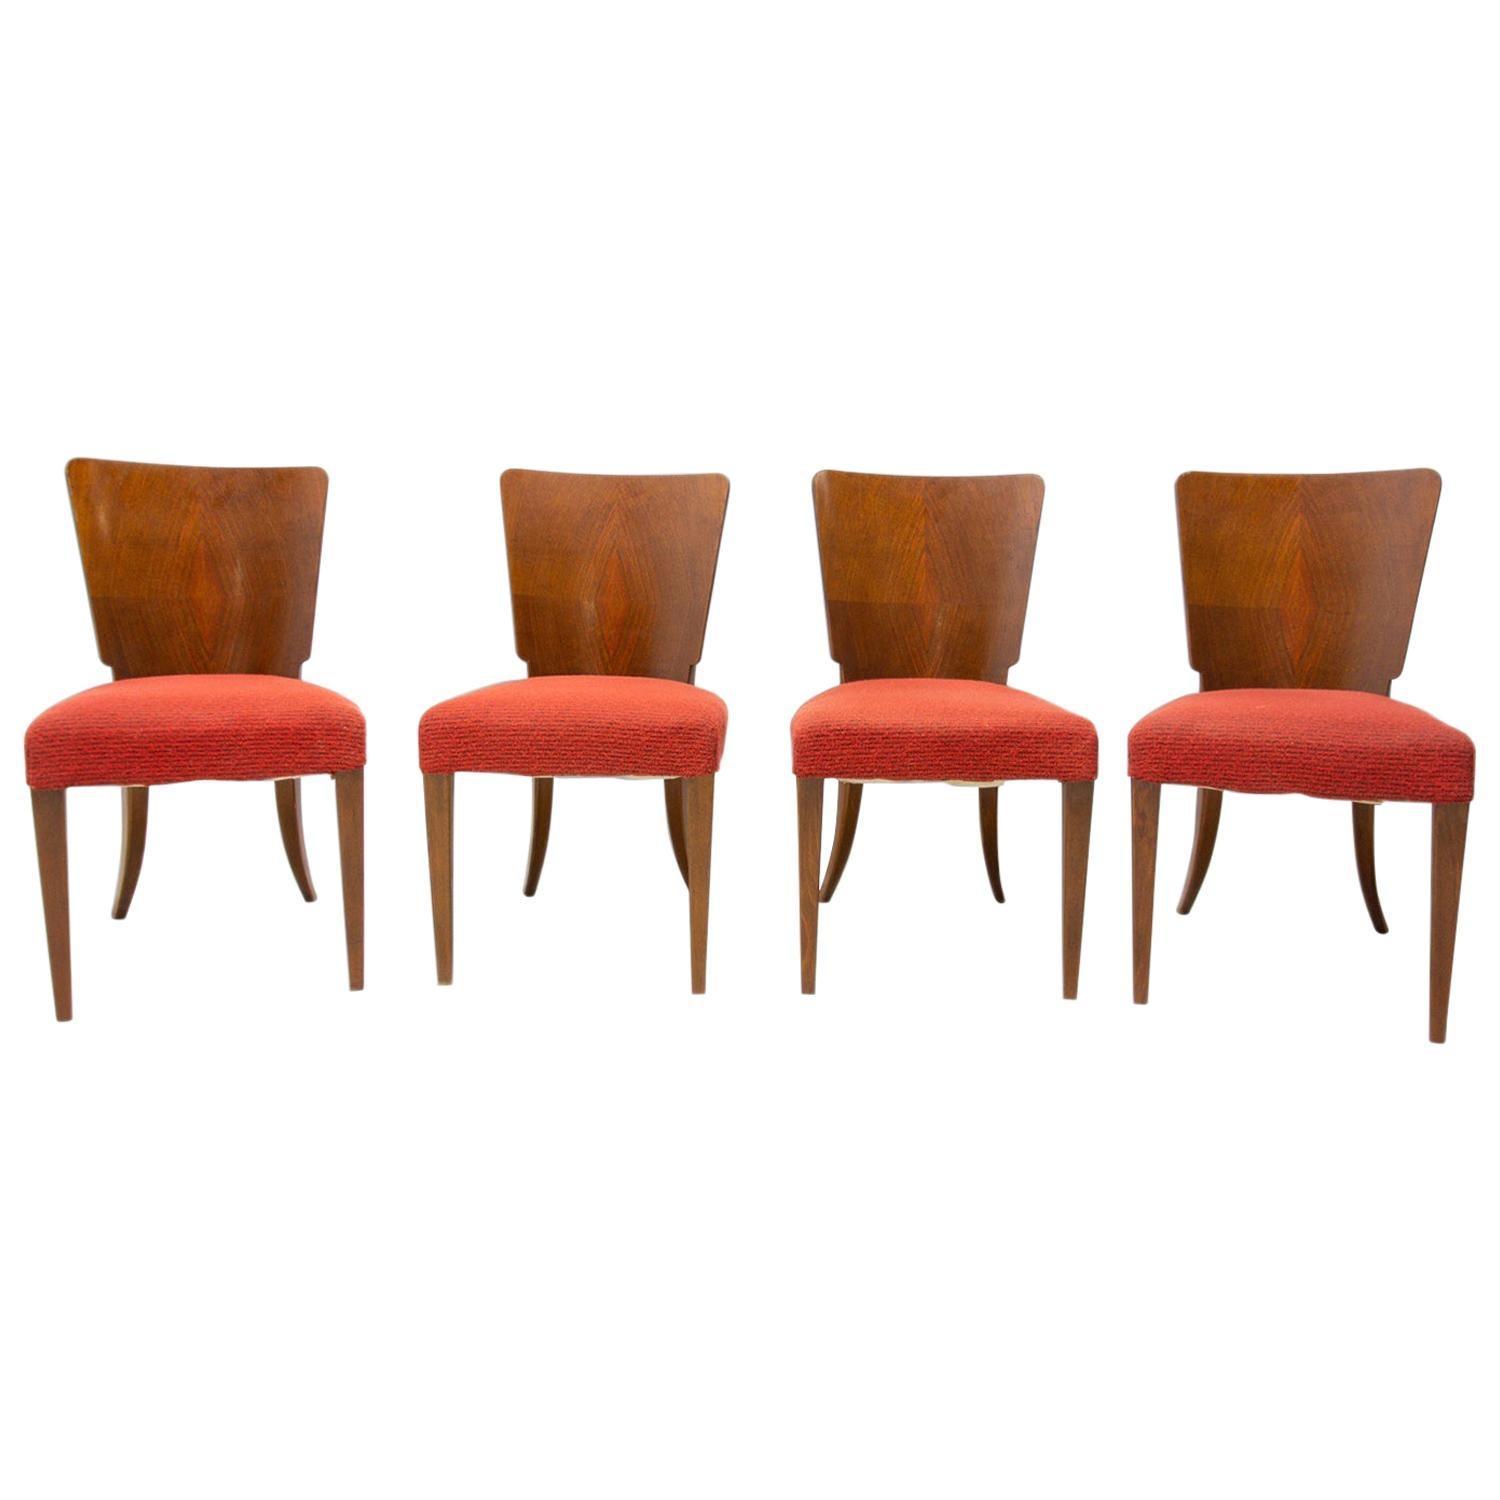 Art Deco Dining Chairs H-214 by Jindrich Halabala for ÚP Závody, 1950's